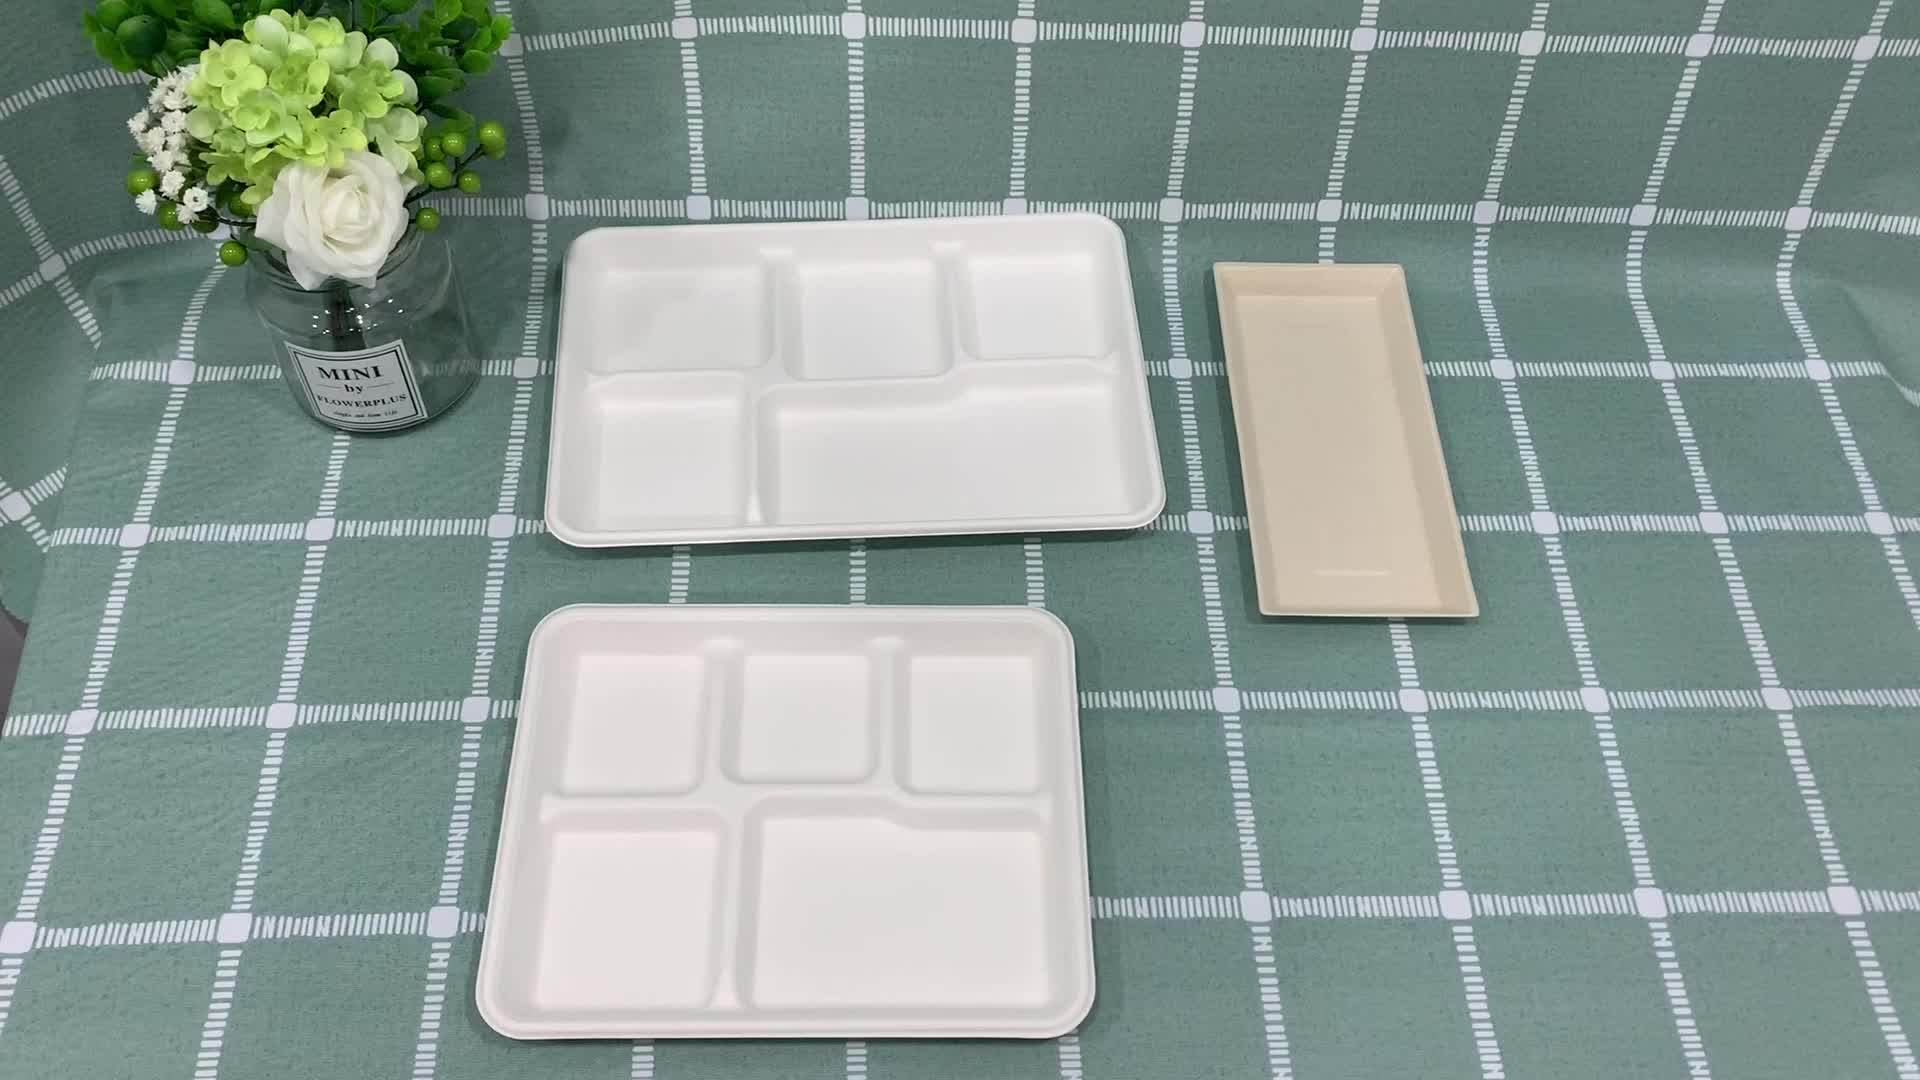 White Pulp sugarcane Moulded Disposable Paper Boat dinnerware sets Tray